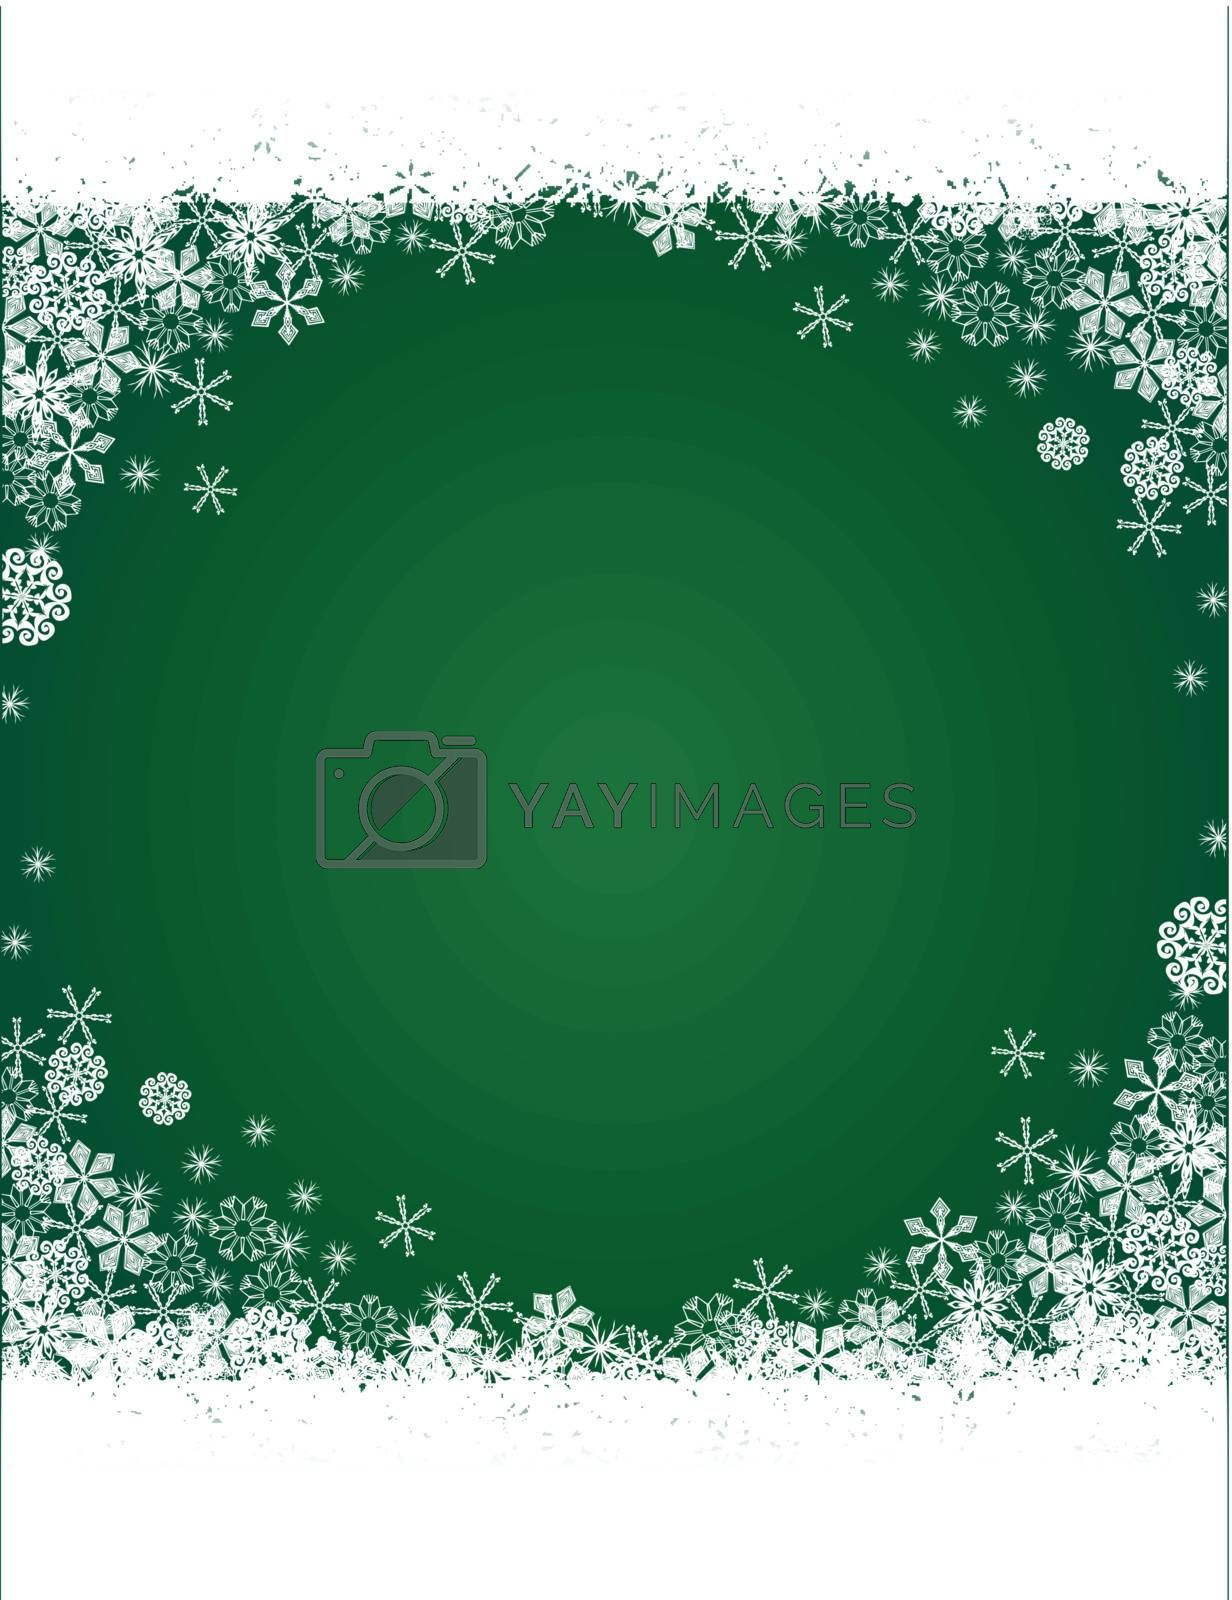 Christmas green background with snowflakes pattern